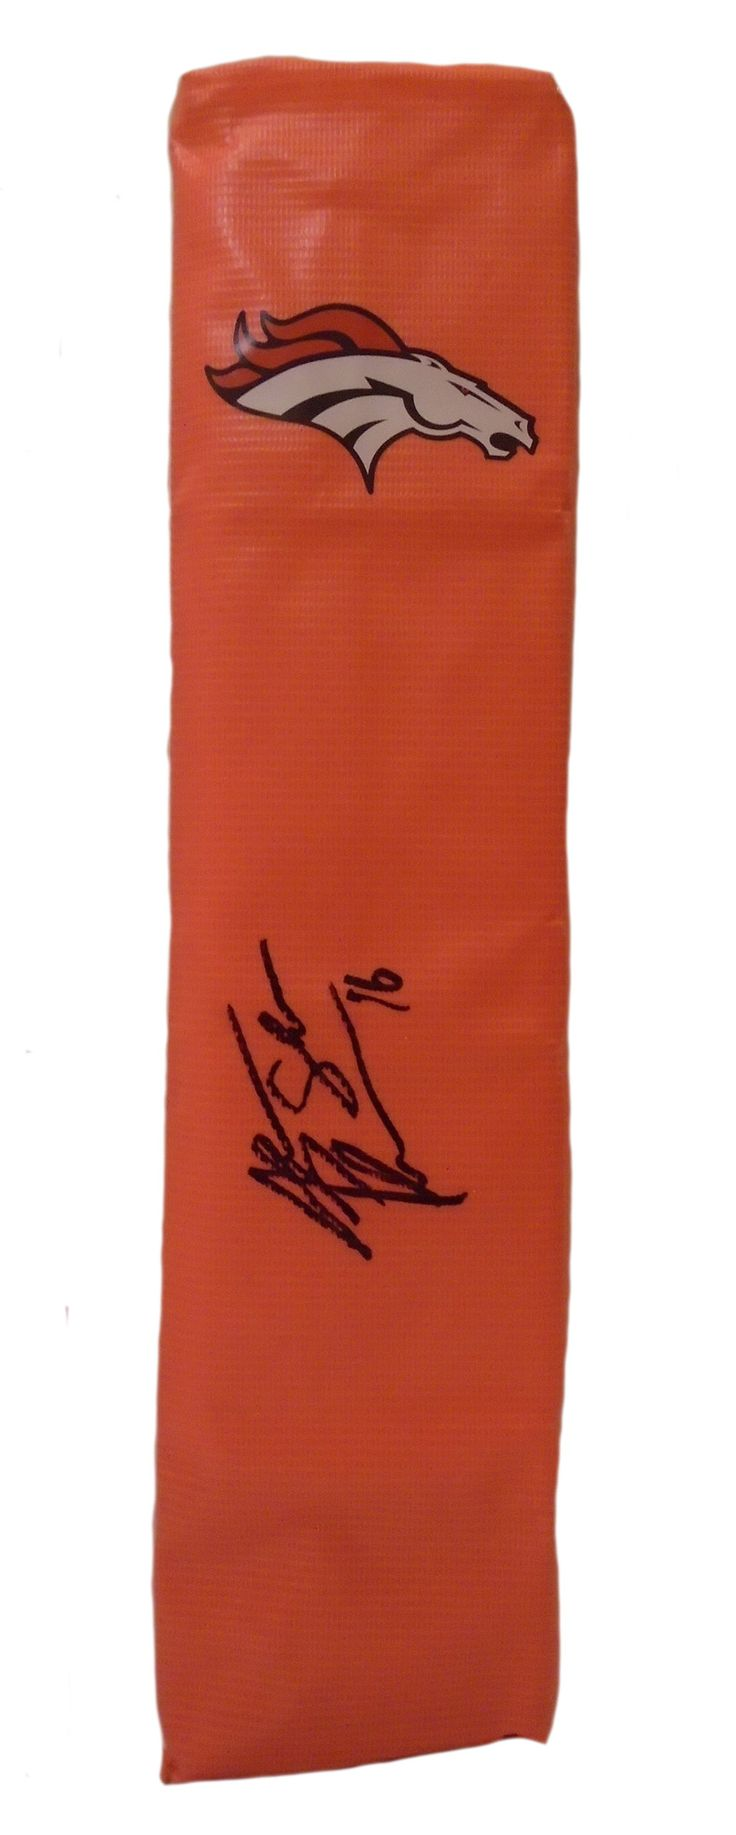 "Jake ""The Snake"" Plummer signed Denver Broncos full size football touchdown end zone pylon w/ proof photo. Proof photo of Jake signing will be included with your purchase along with a COA issued from Southwestconnection-Memorabilia, guaranteeing the item to pass authentication services from PSA/DNA or JSA. Free USPS shipping. www.AutographedwithProof.com is your one stop for autographed collectibles from Denver sports teams. Check back with us often, as we are always obtaining new items."